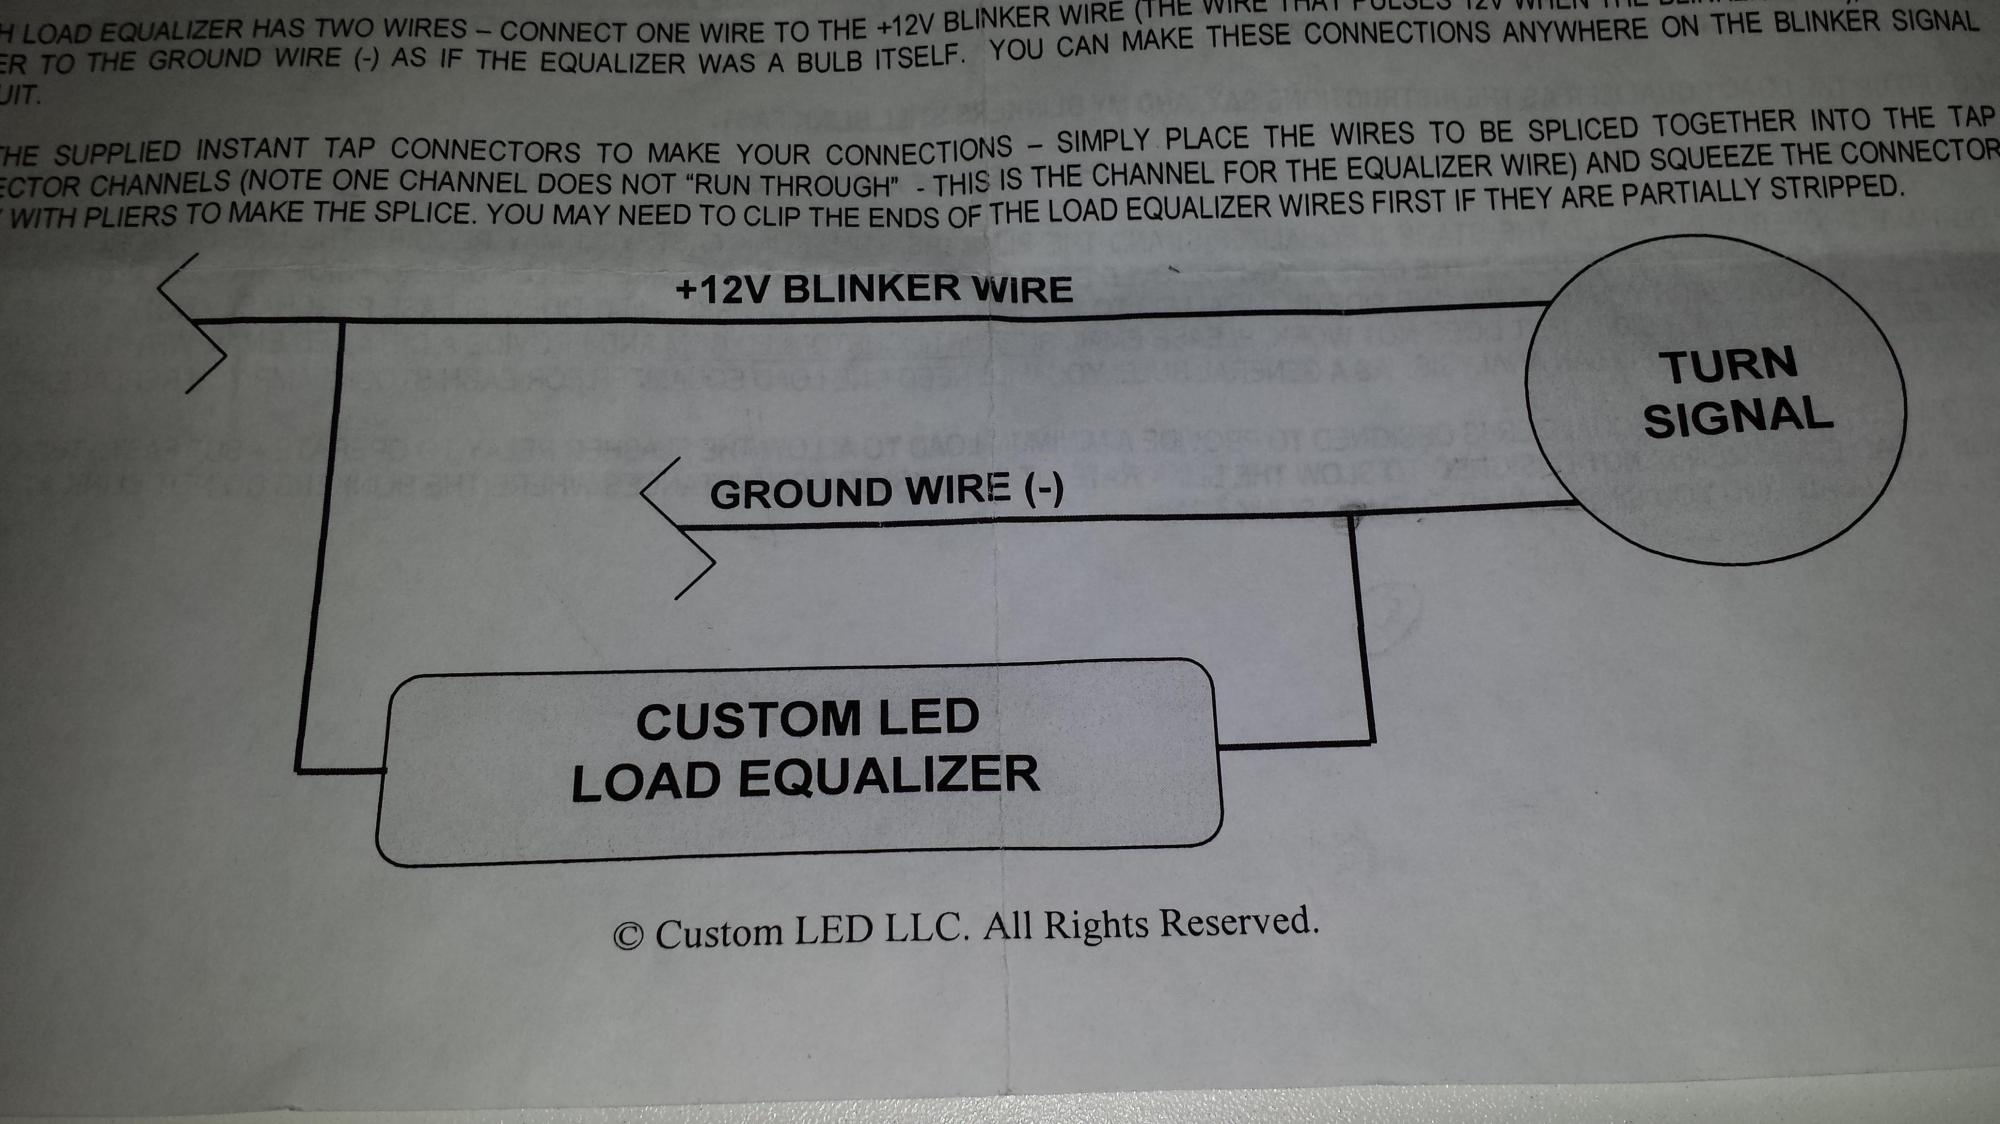 hight resolution of integrated led tail light wiring 1198s ducati org forum the wiring diagram led light set ducati led tail light wiring diagram